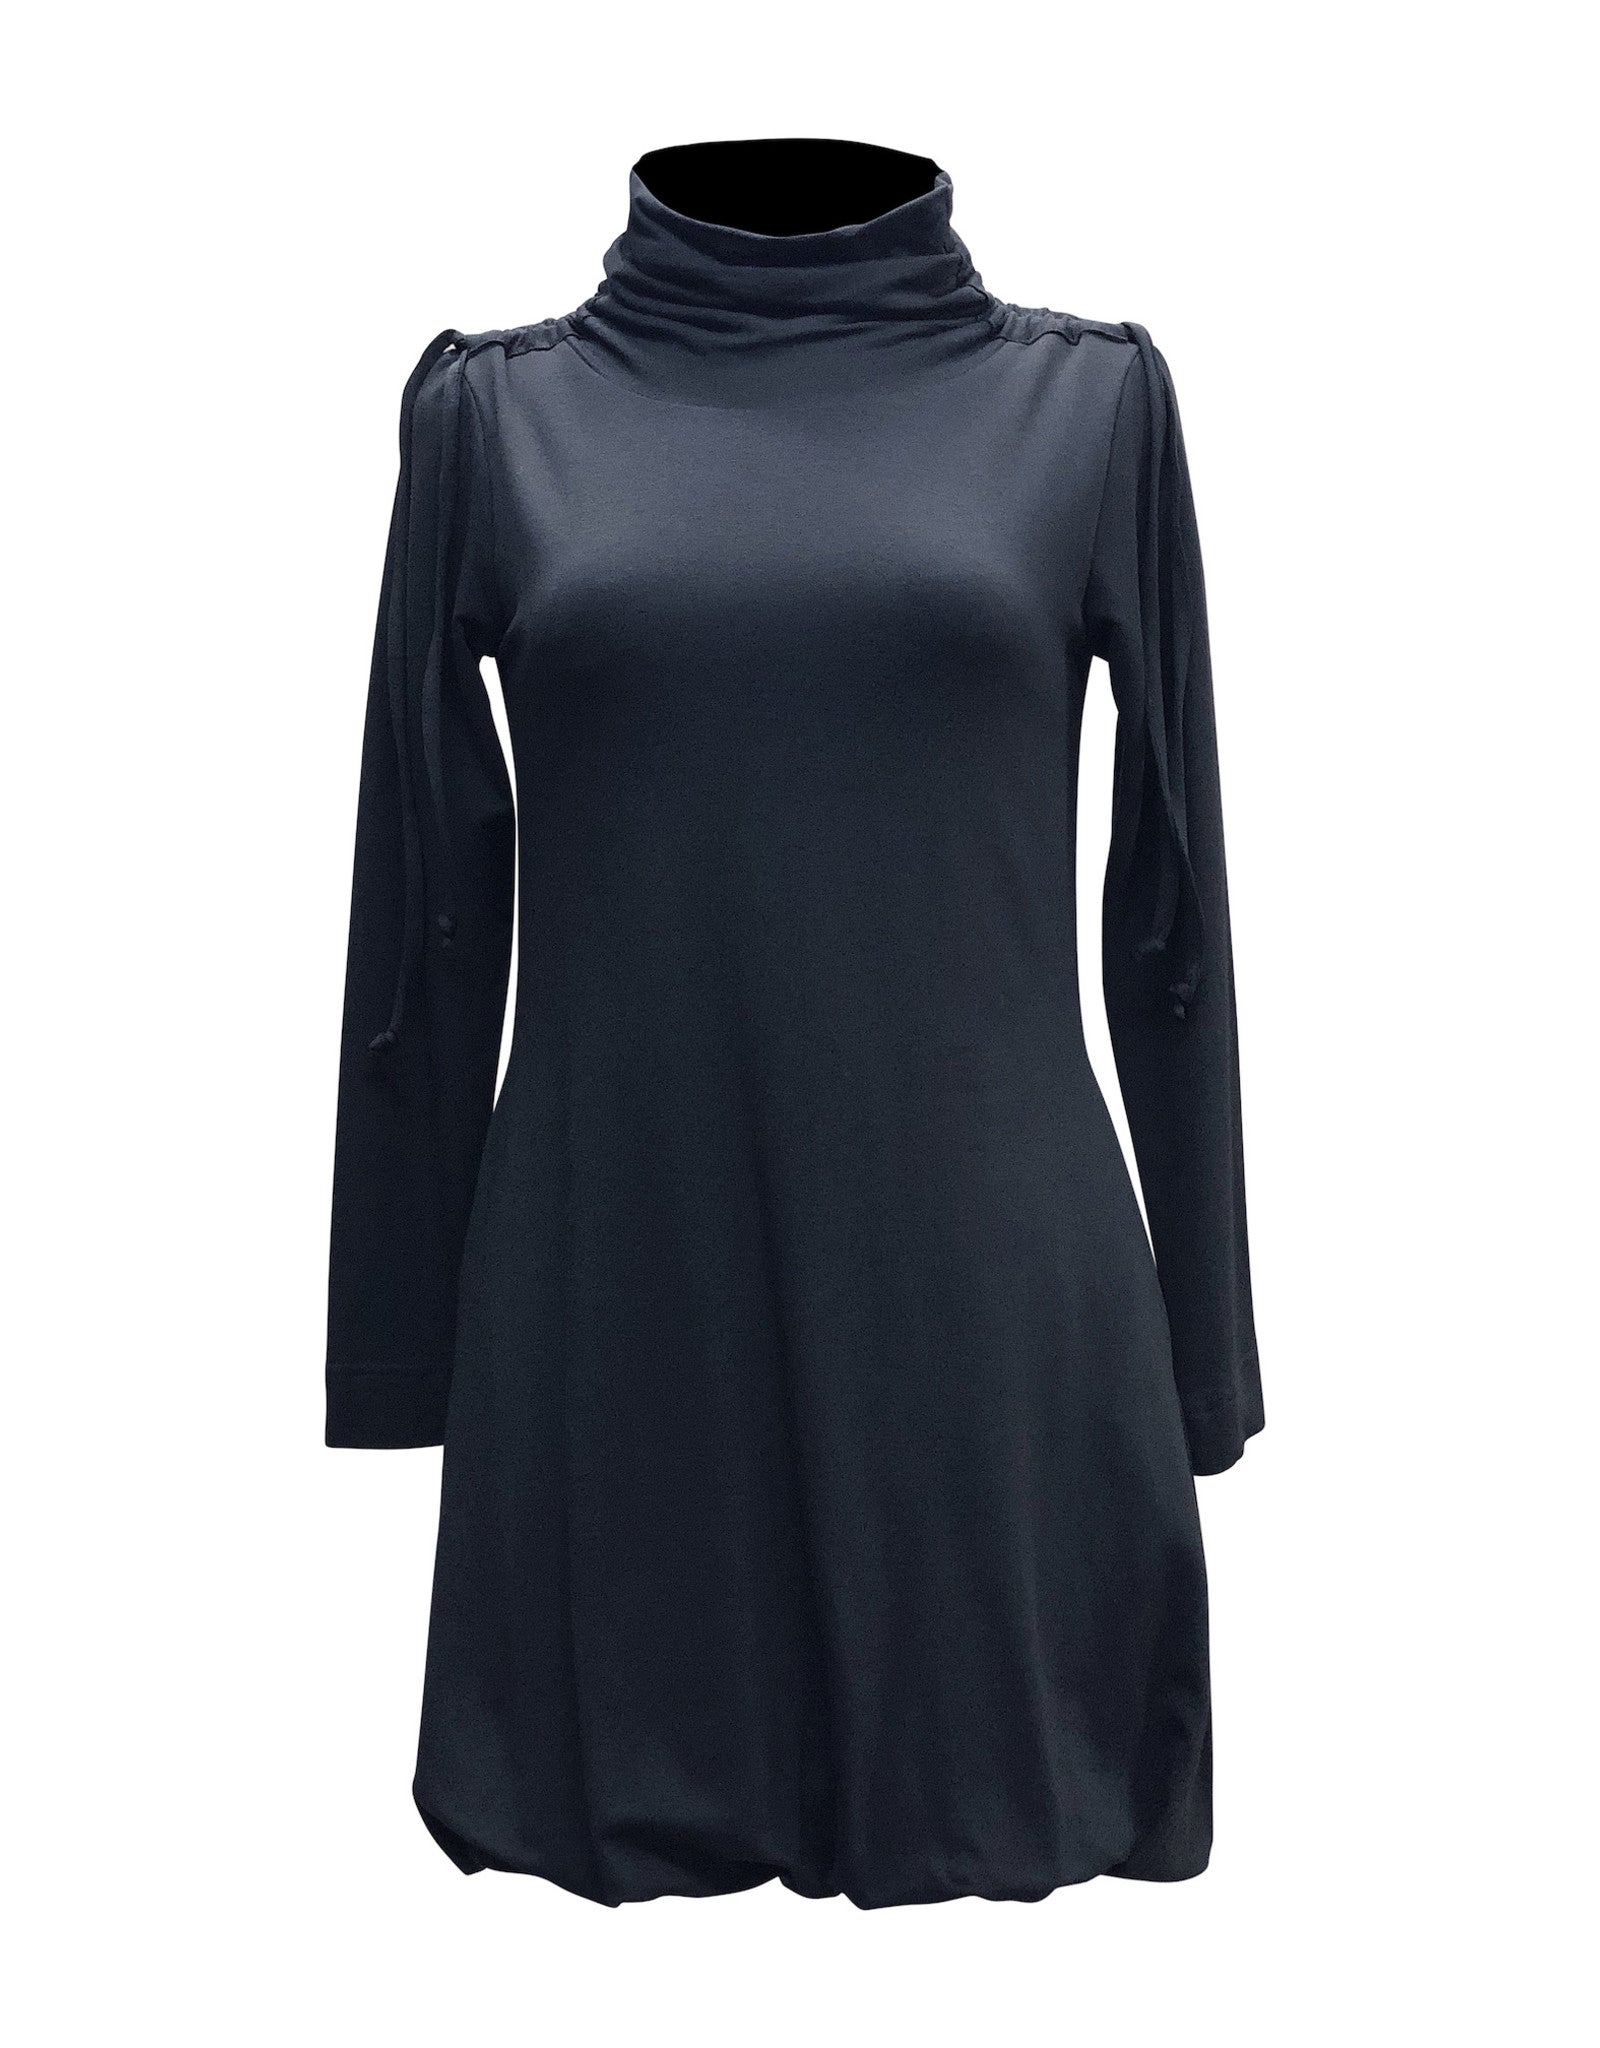 L&B Jantje Dress in Black